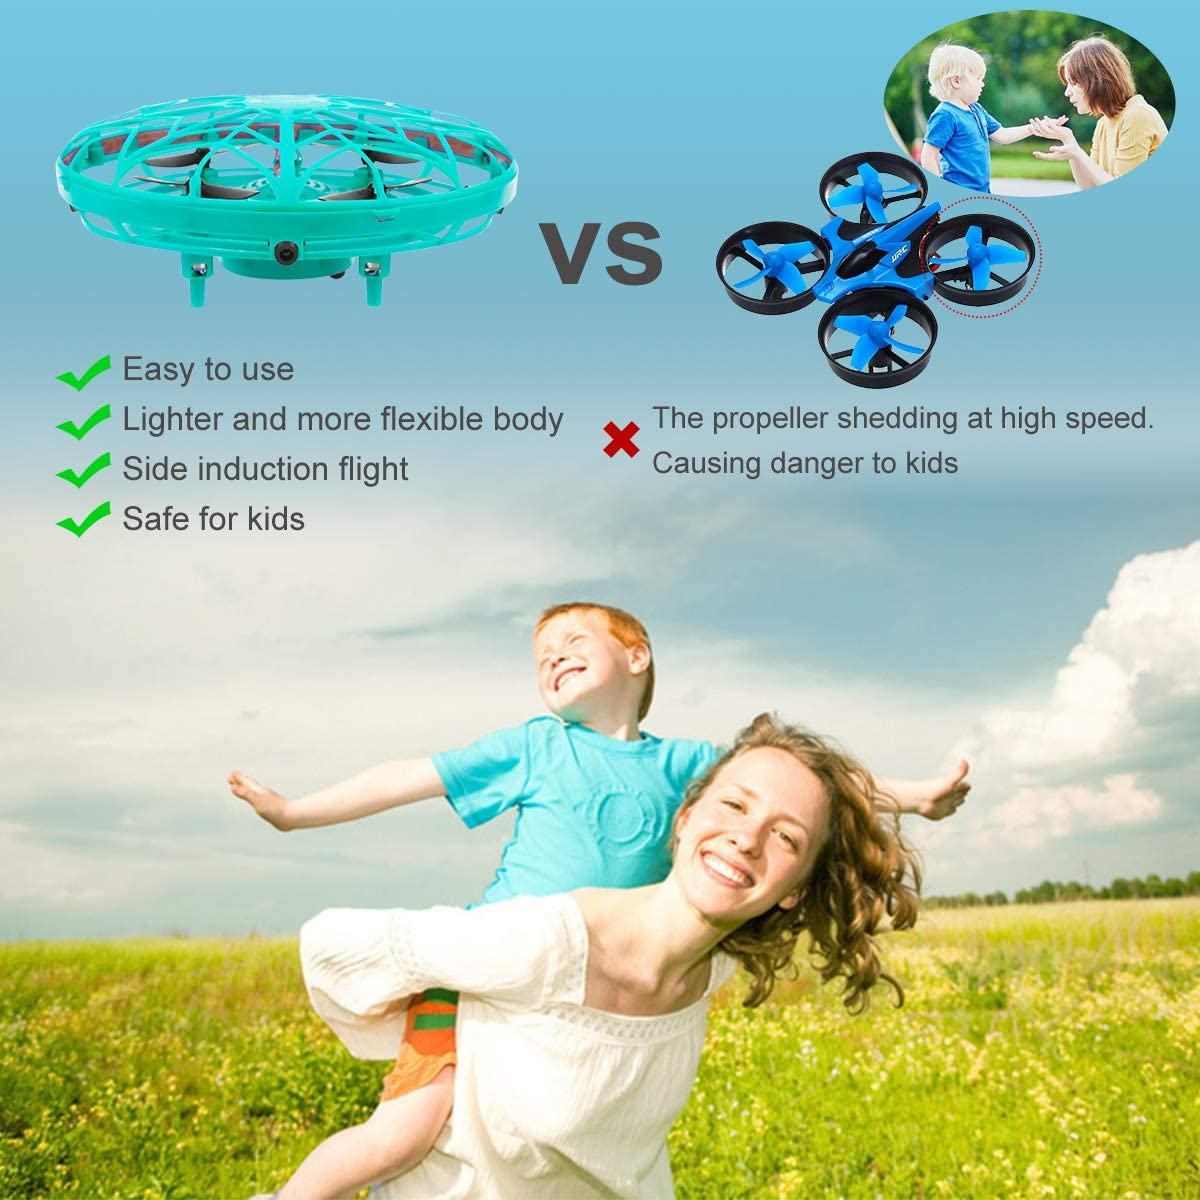 KToyoung Hand Operated Drones for Kids Adults,Hands Free Mini Drone Small Flying Ball Toy UFO Drone Indoor Outdoor Motion Sensor Helicopter Ball Toys for Kids 6 7 8 9 10 and Up Years Boys Girls Gift